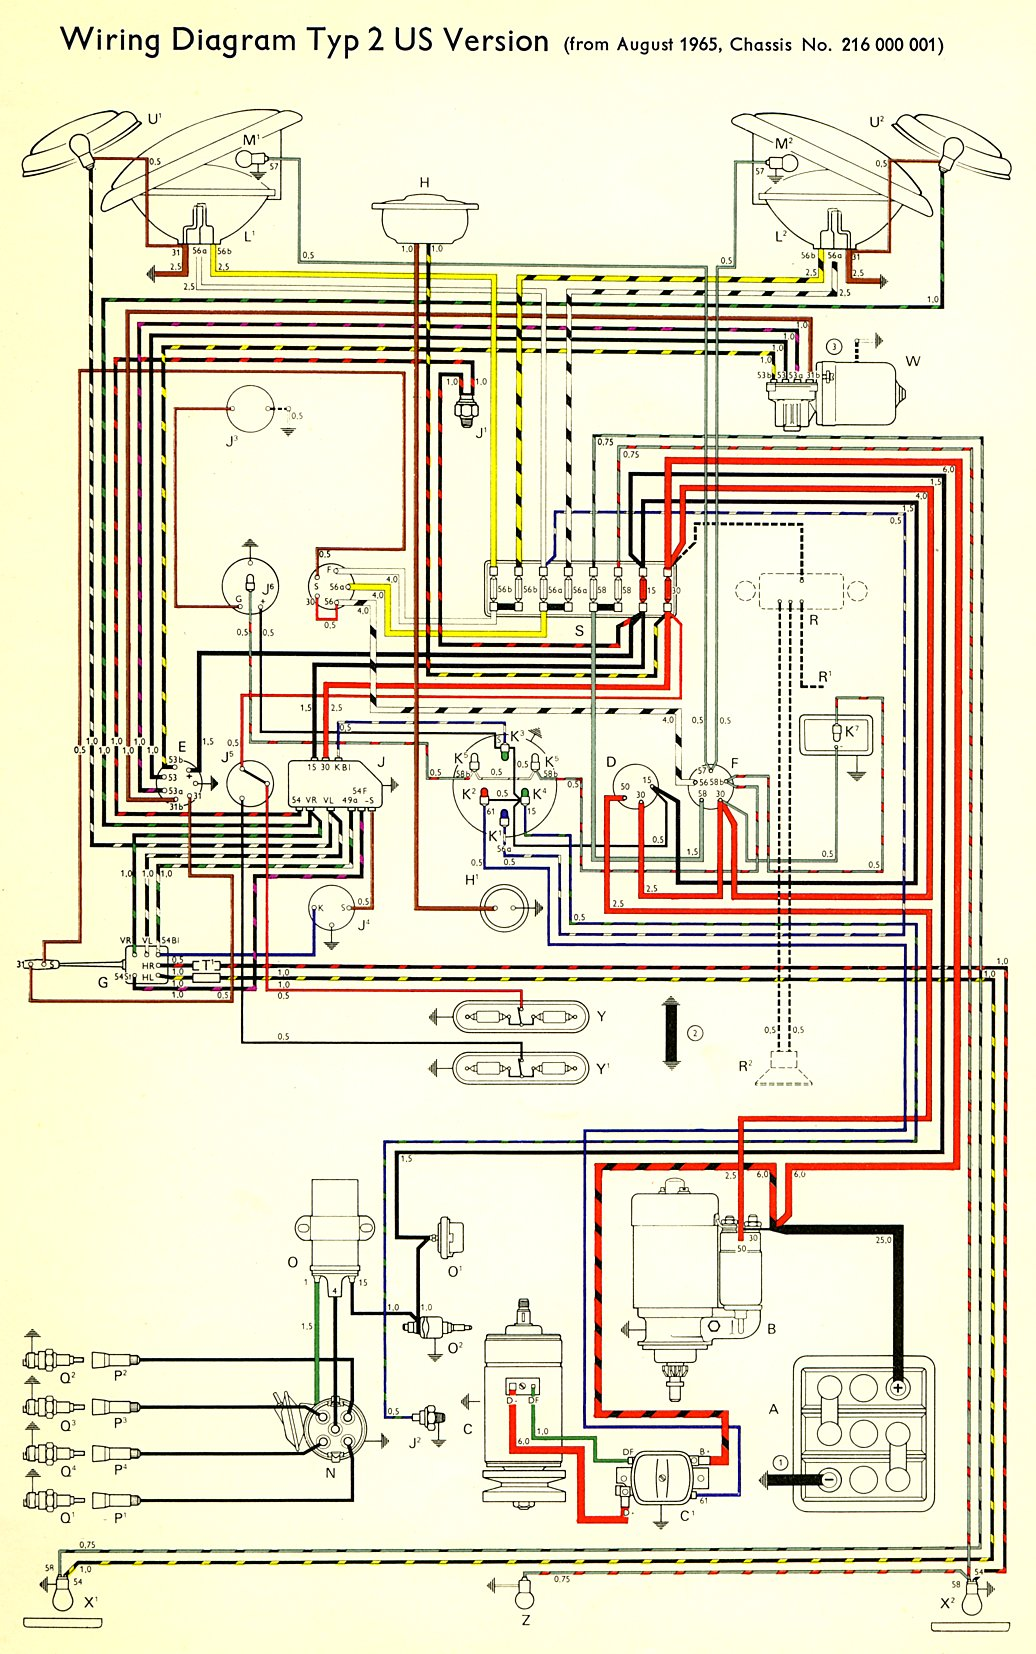 1963 Vw Van Wiring Diagram Another Blog About 06 Subaru Forester Interior 1966 Bus Usa Thegoldenbug Com Rh